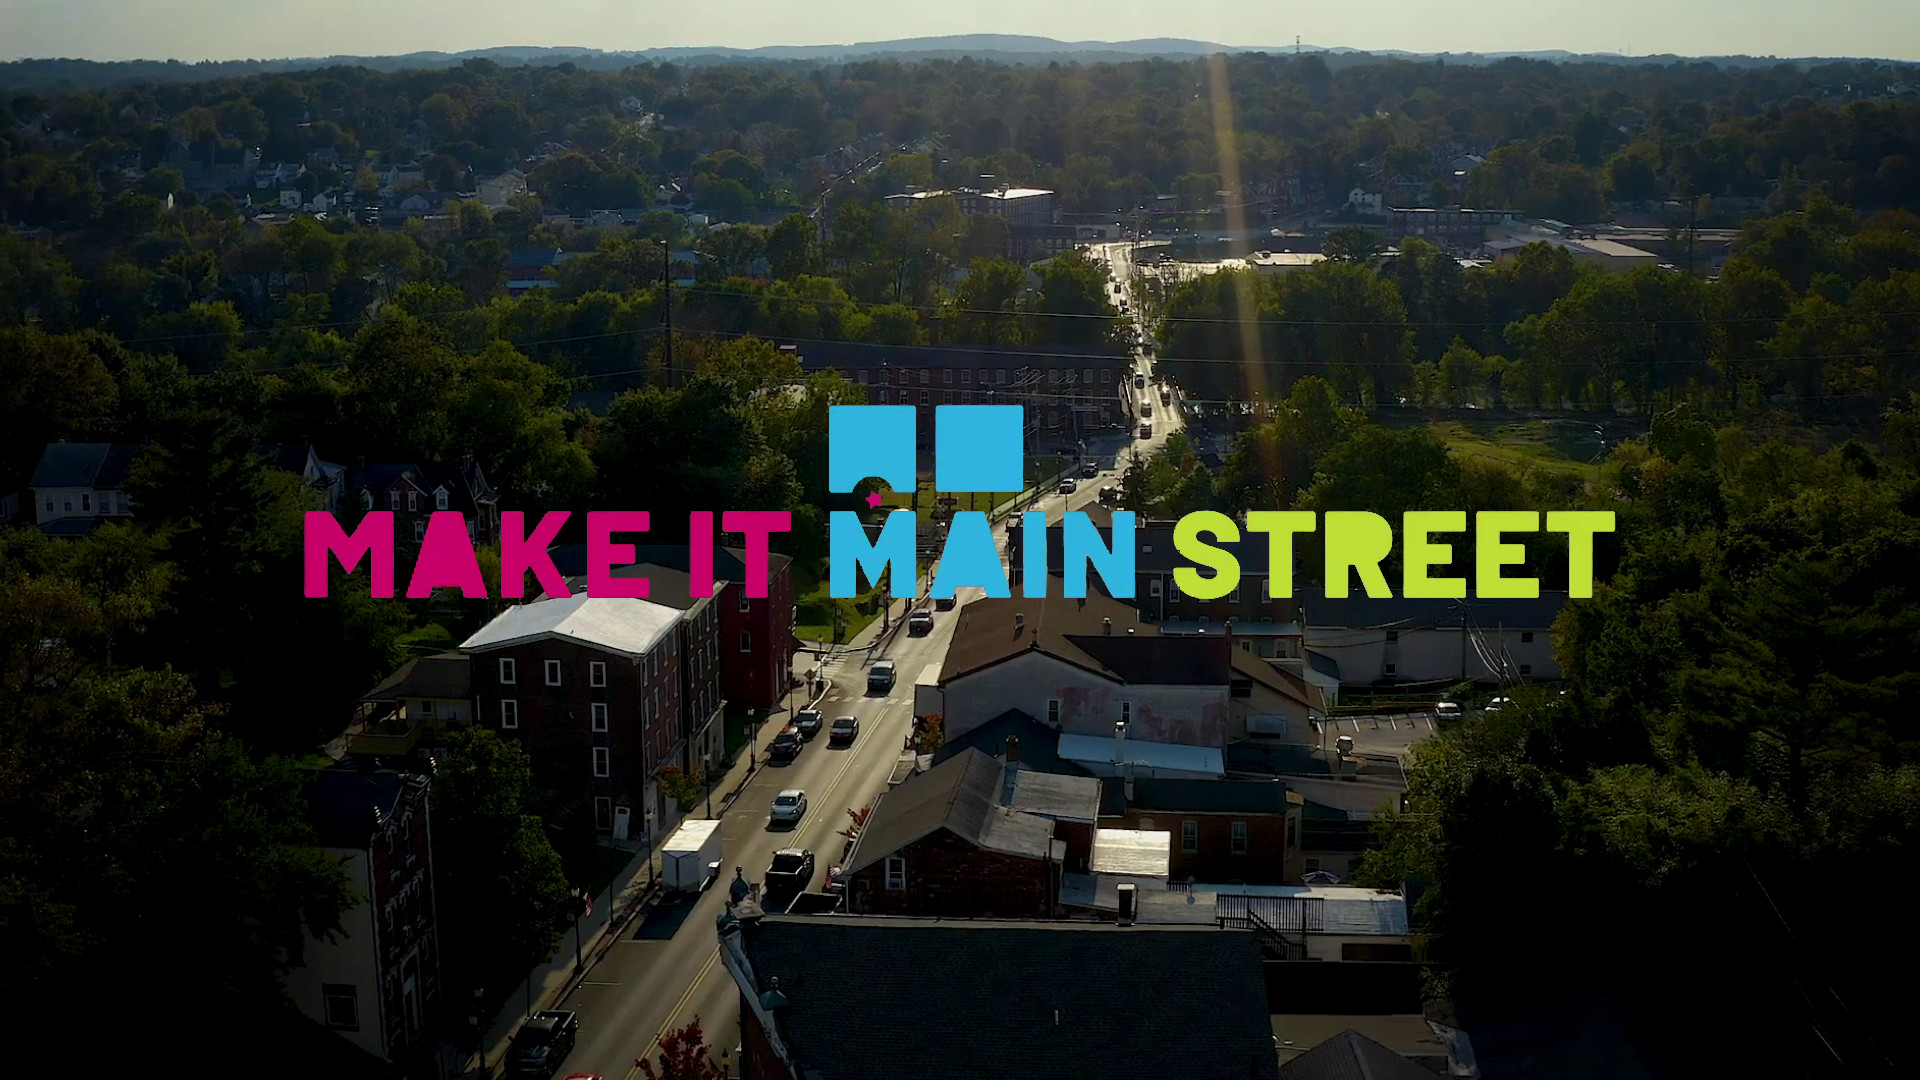 Make It Main Street by Valley Forge Tourism and Convention Board